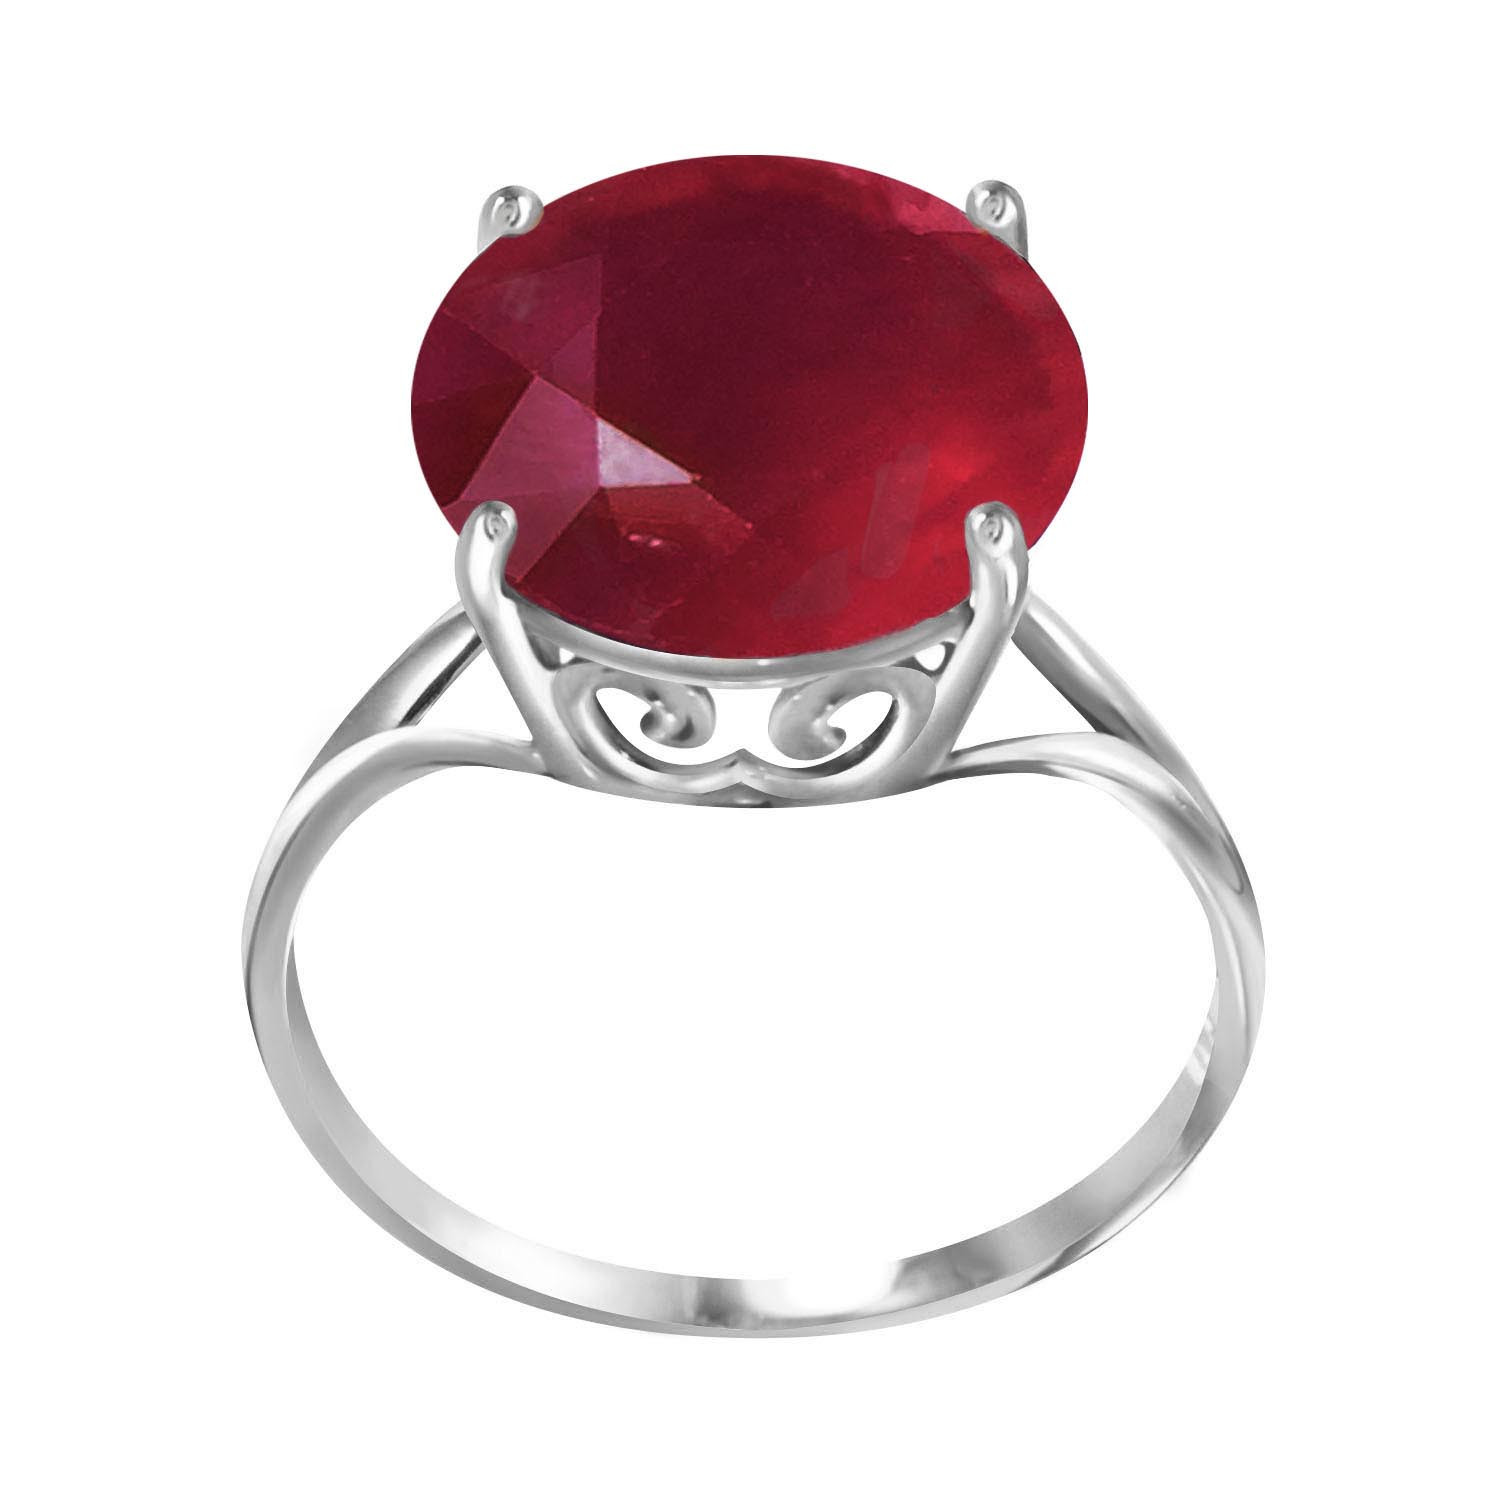 Round Cut Ruby Ring 8.5 ct in 9ct White Gold